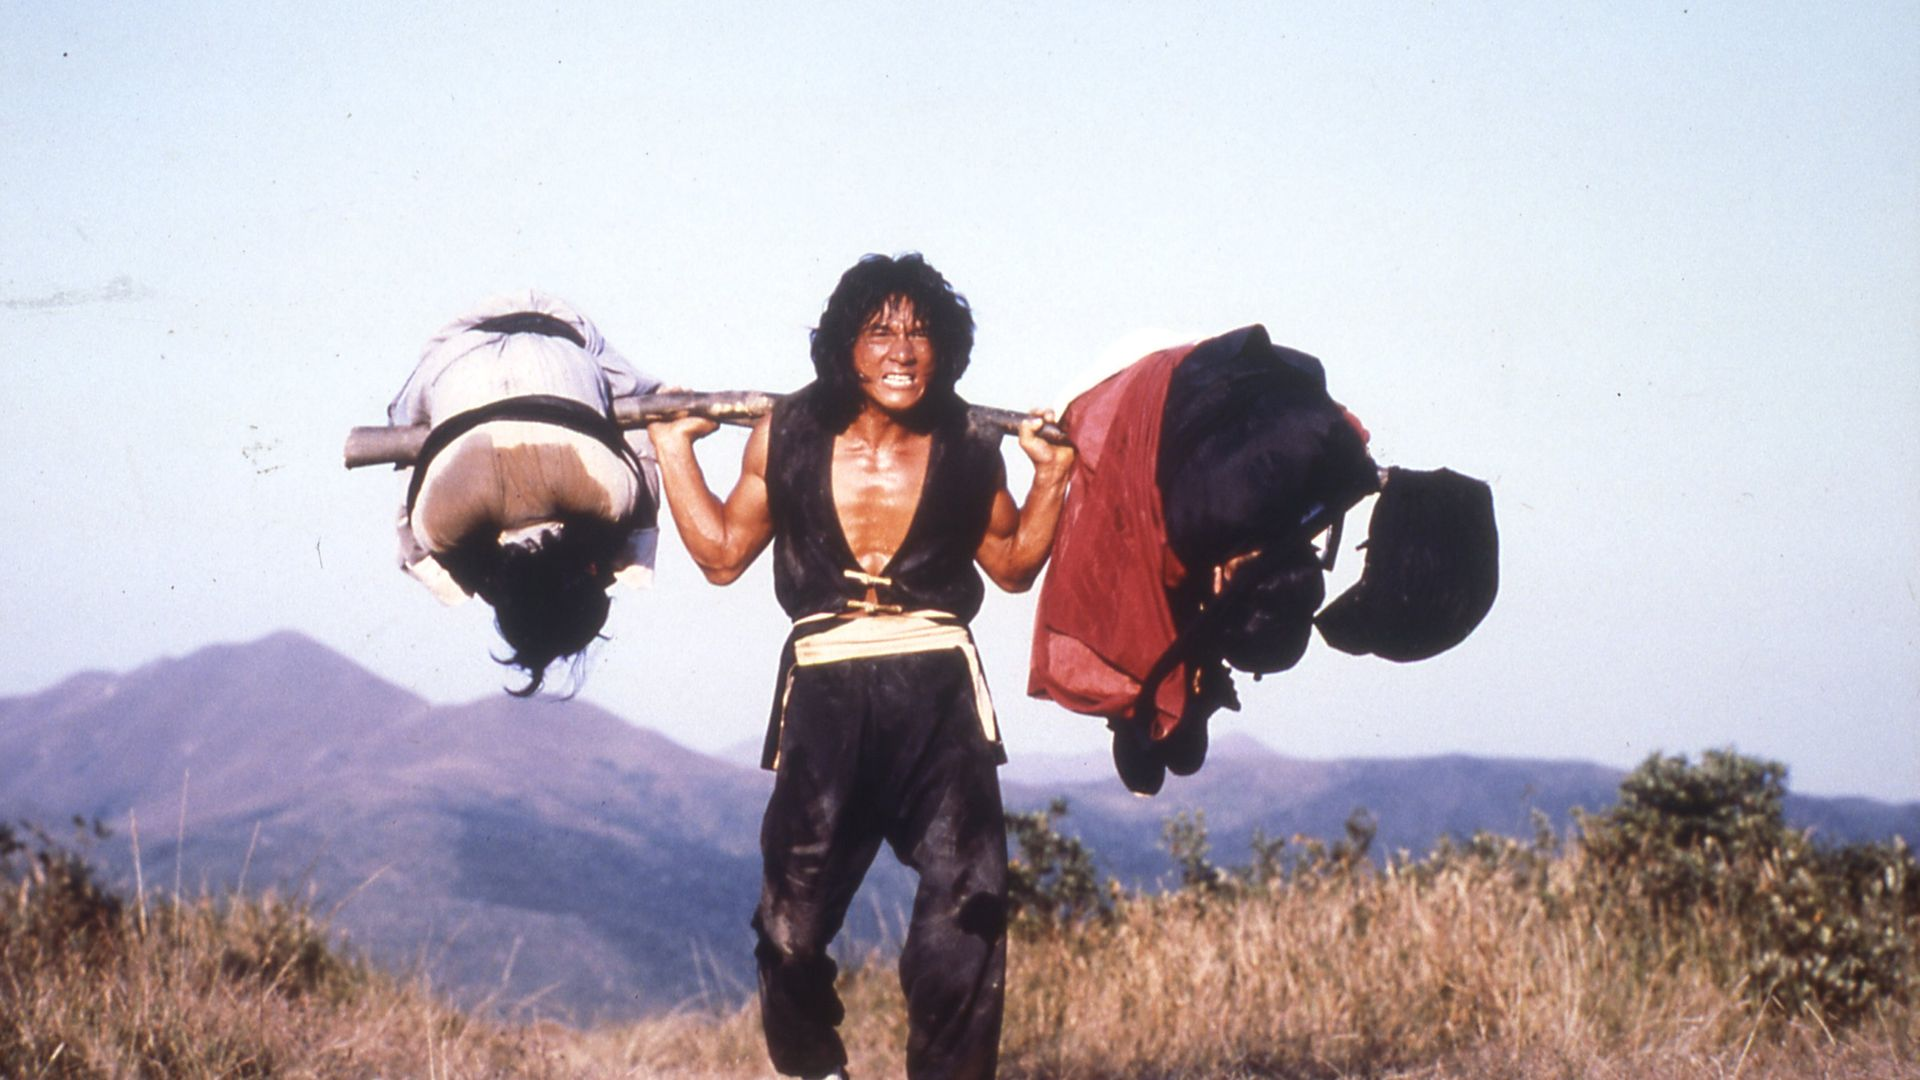 Jackie Chan was both director and star of 1980's The Young Master at the age of 26 - Credit: 88 Films